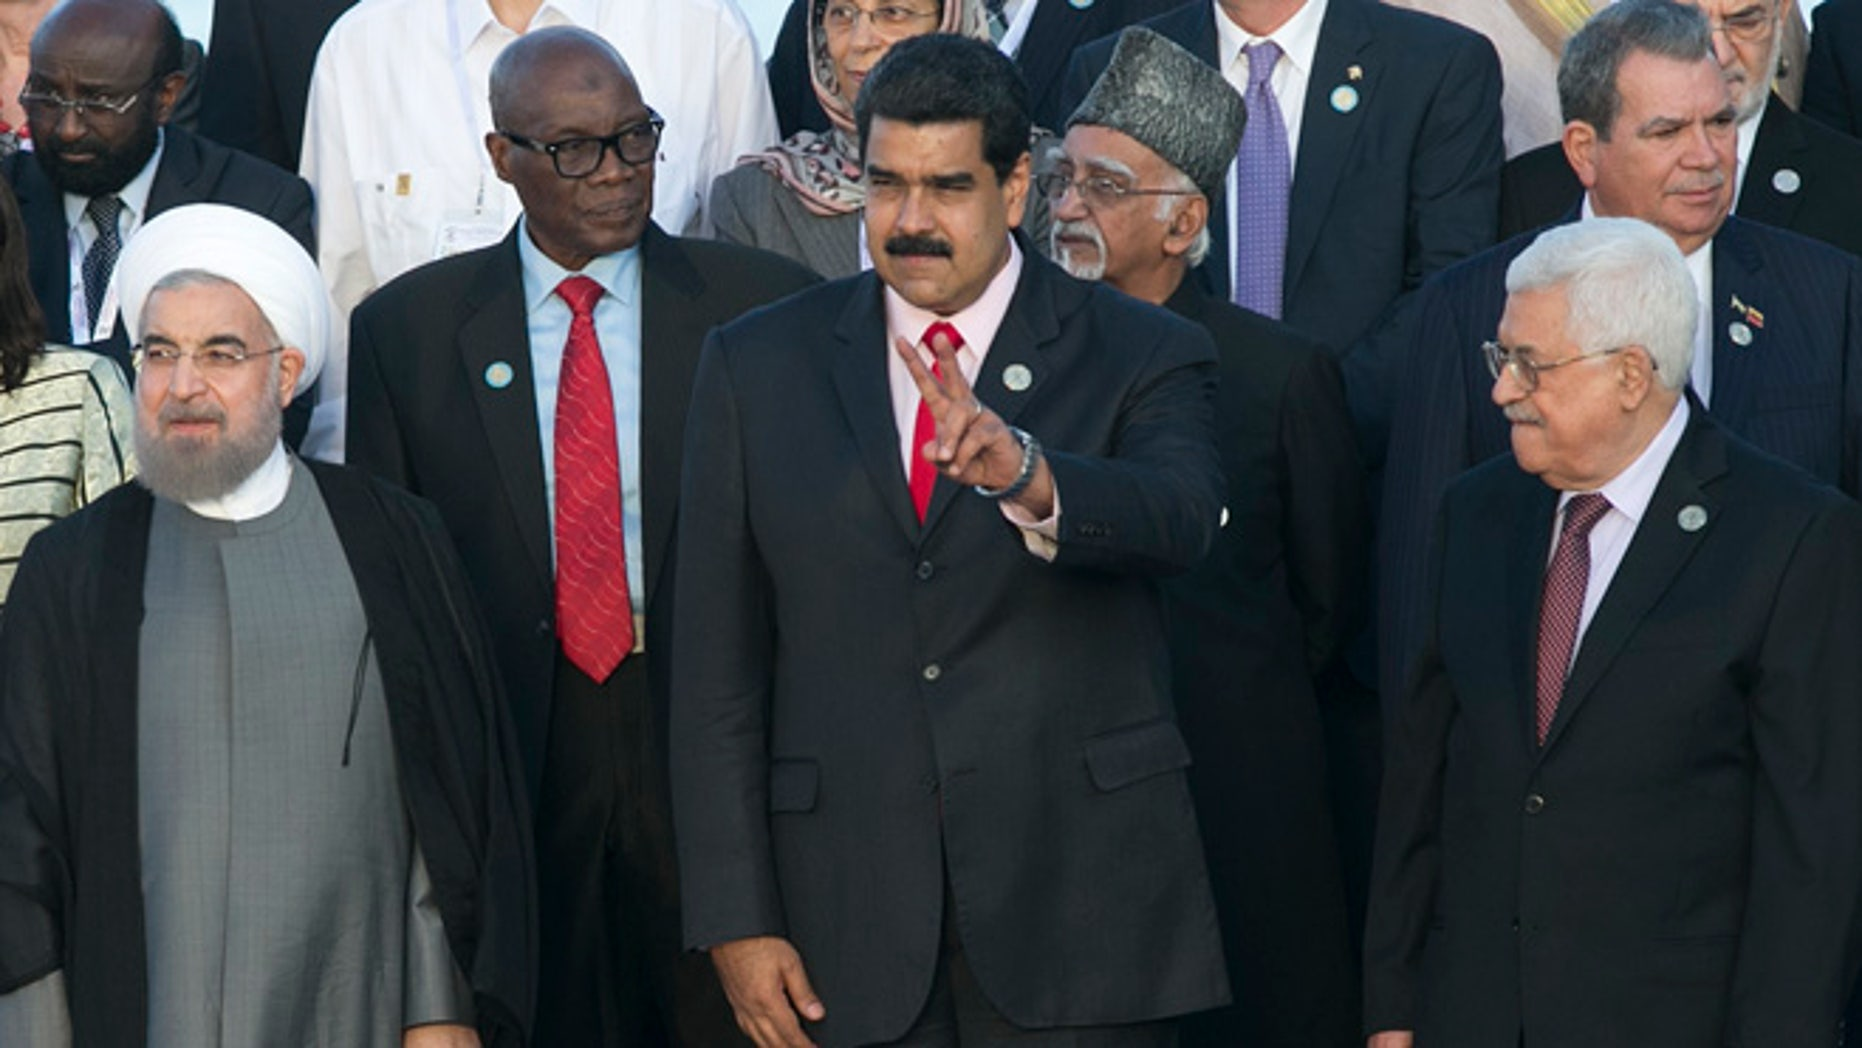 Iran's President Hassan Rouhani, front row, from left, Venezuela's President Nicolas Maduro, and Palestinian President Mahmoud Abbas, gather for an official group photo at the 17th Non-Aligned Movement Summit in Porlamar, on Venezuela's Margarita Island, Saturday, Sept. 17, 2016. (AP Photo/Ariana Cubillos)